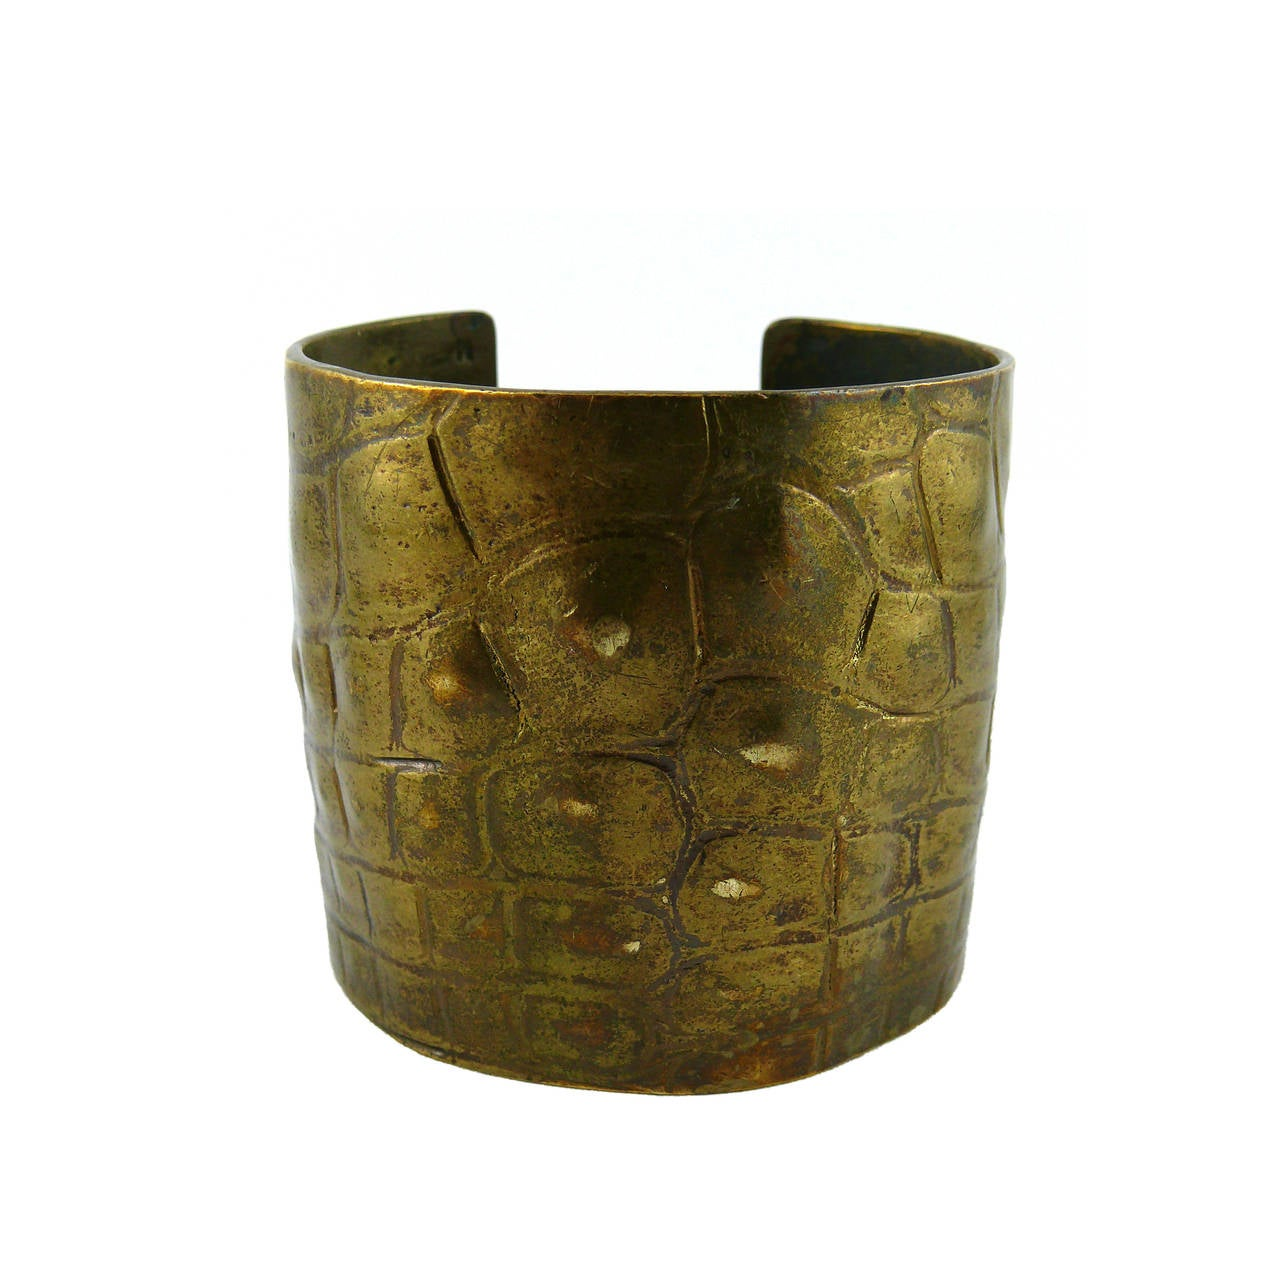 Yves Saint Laurent YSL by Tom Ford Croc-Embossed Cuff Bracelet For Sale